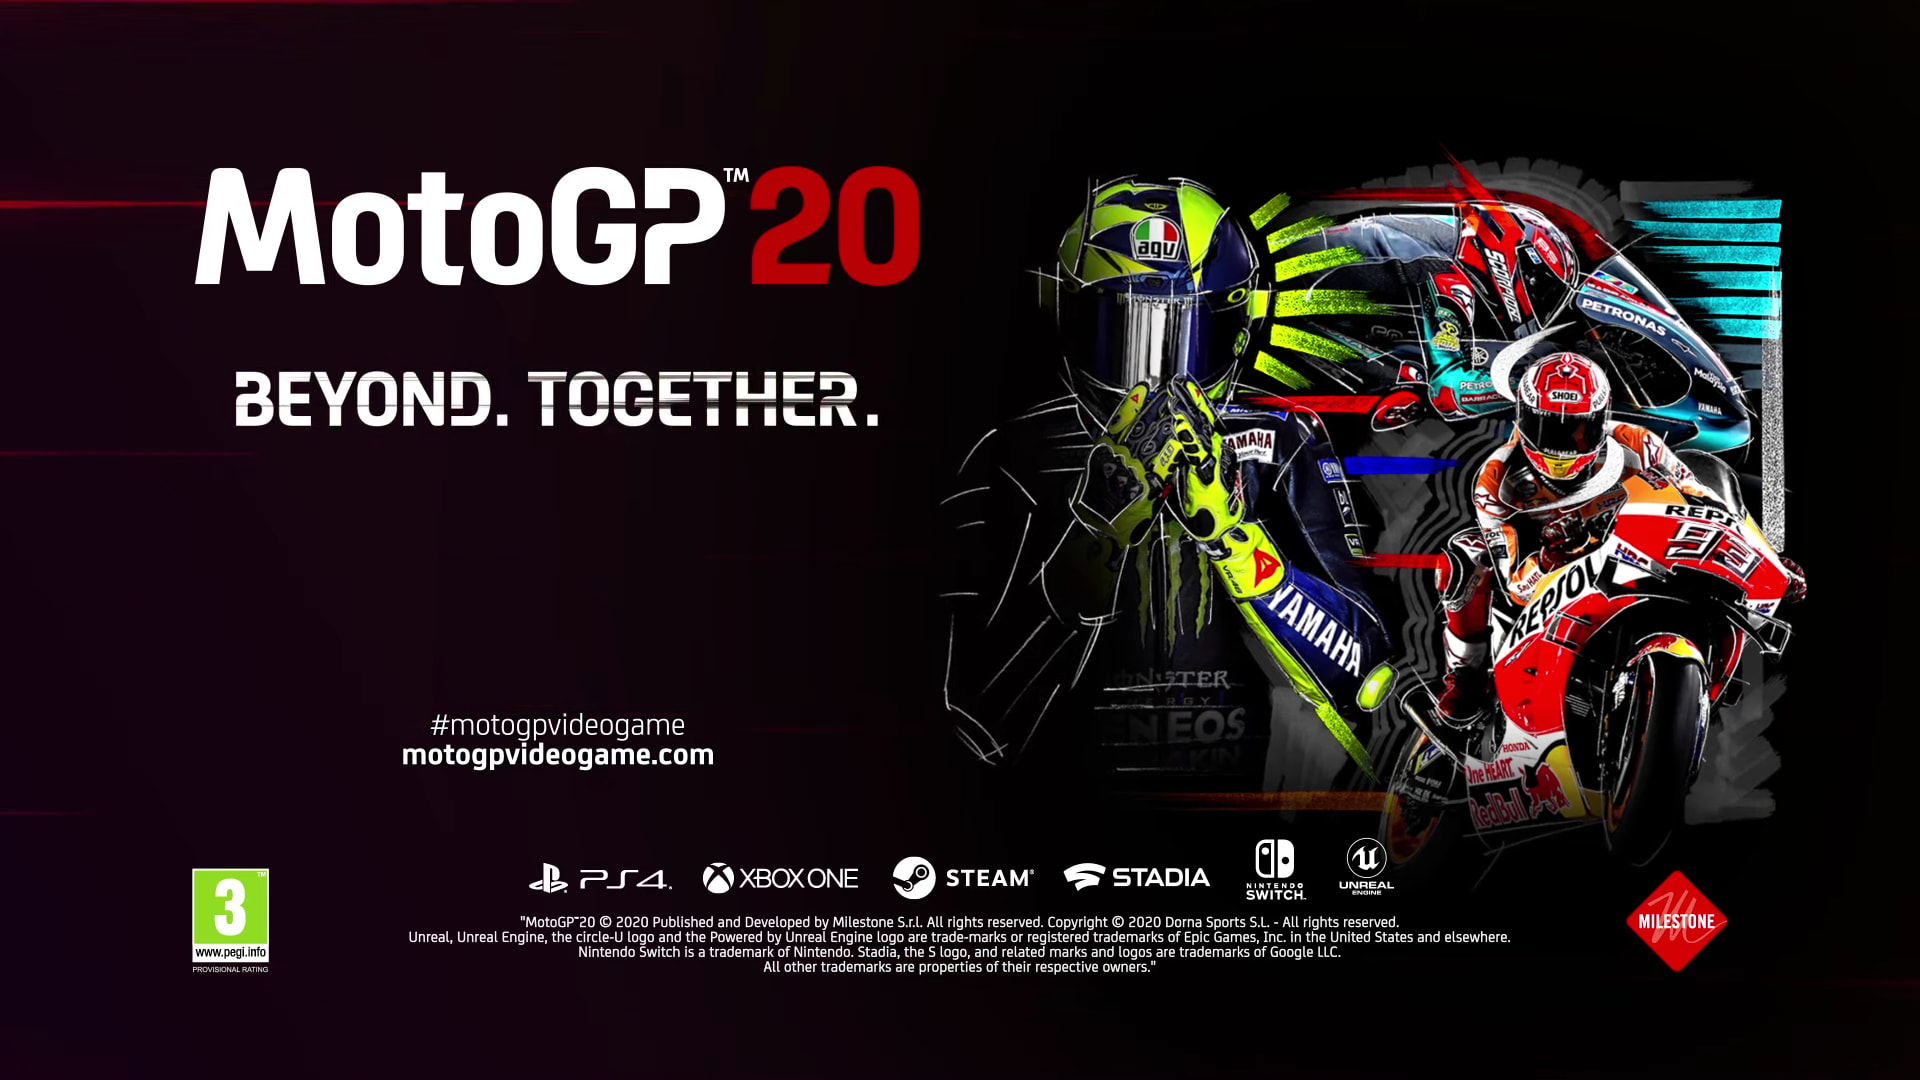 Stadia games: MotoGP 20 coming to Google Stadia on April 23 - 9to5Google